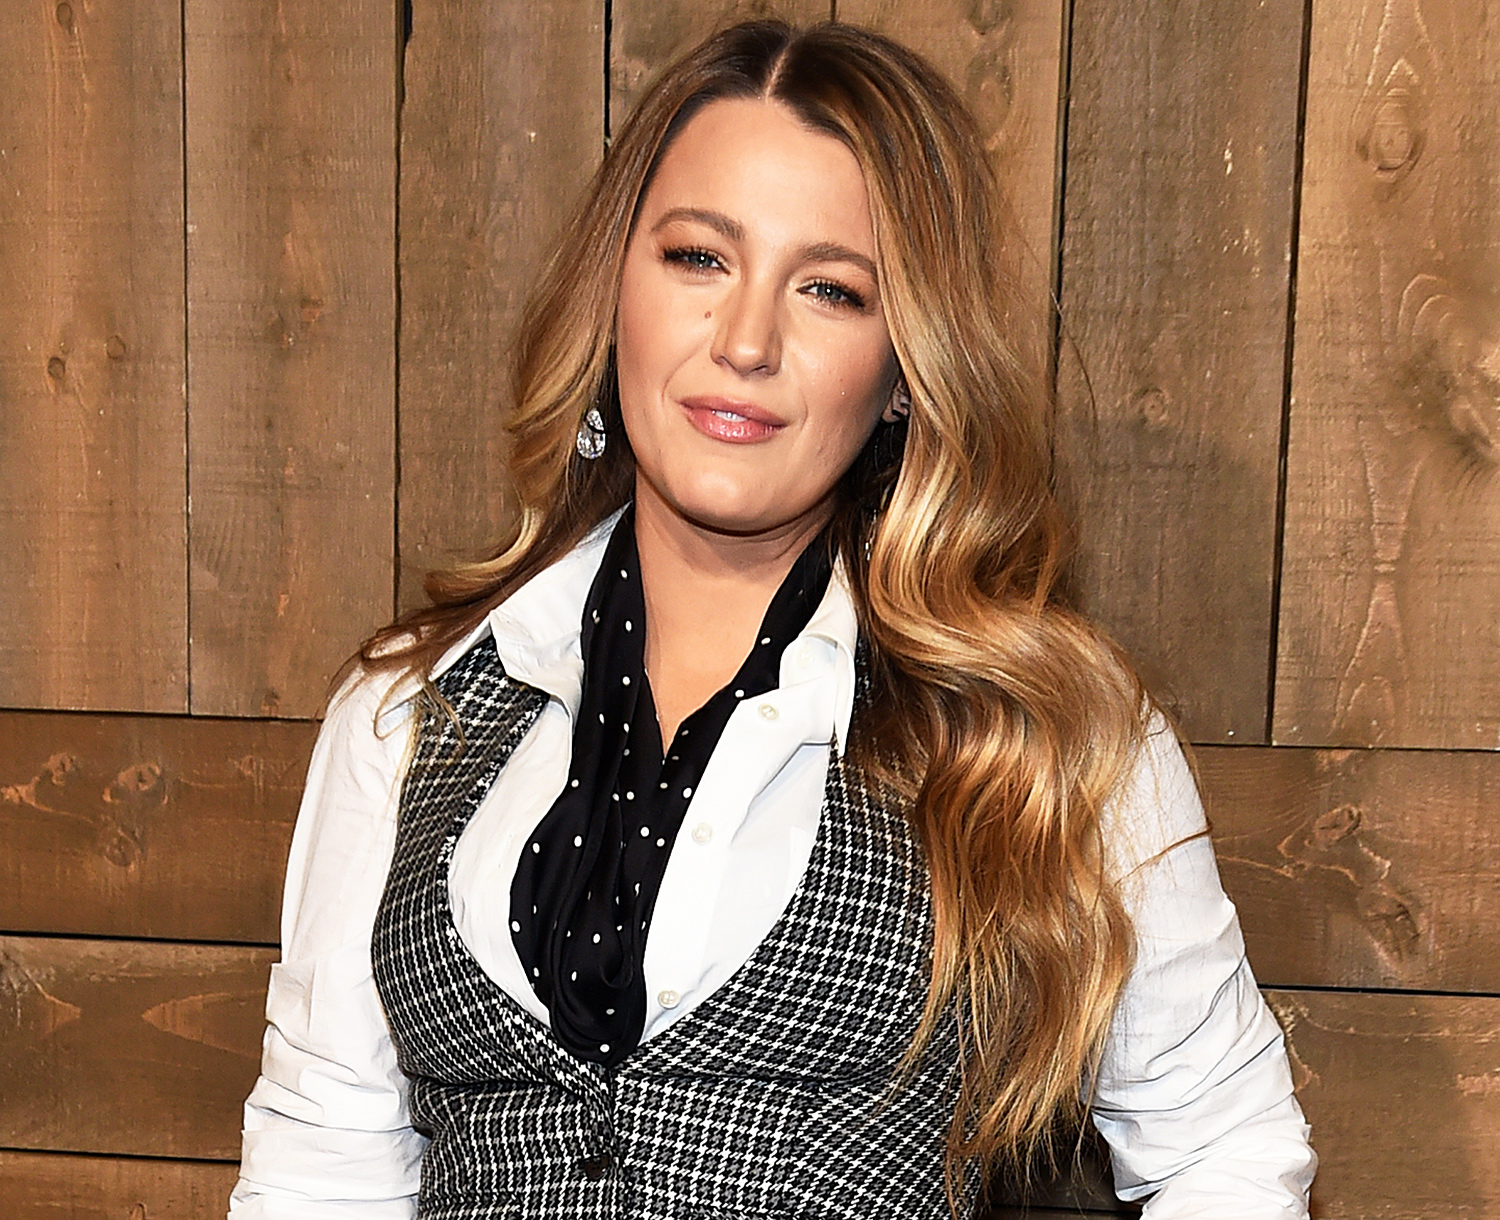 Blake Lively Calls Out Paparazzi and Tabloid For Posting Photos Of Her 3 Children